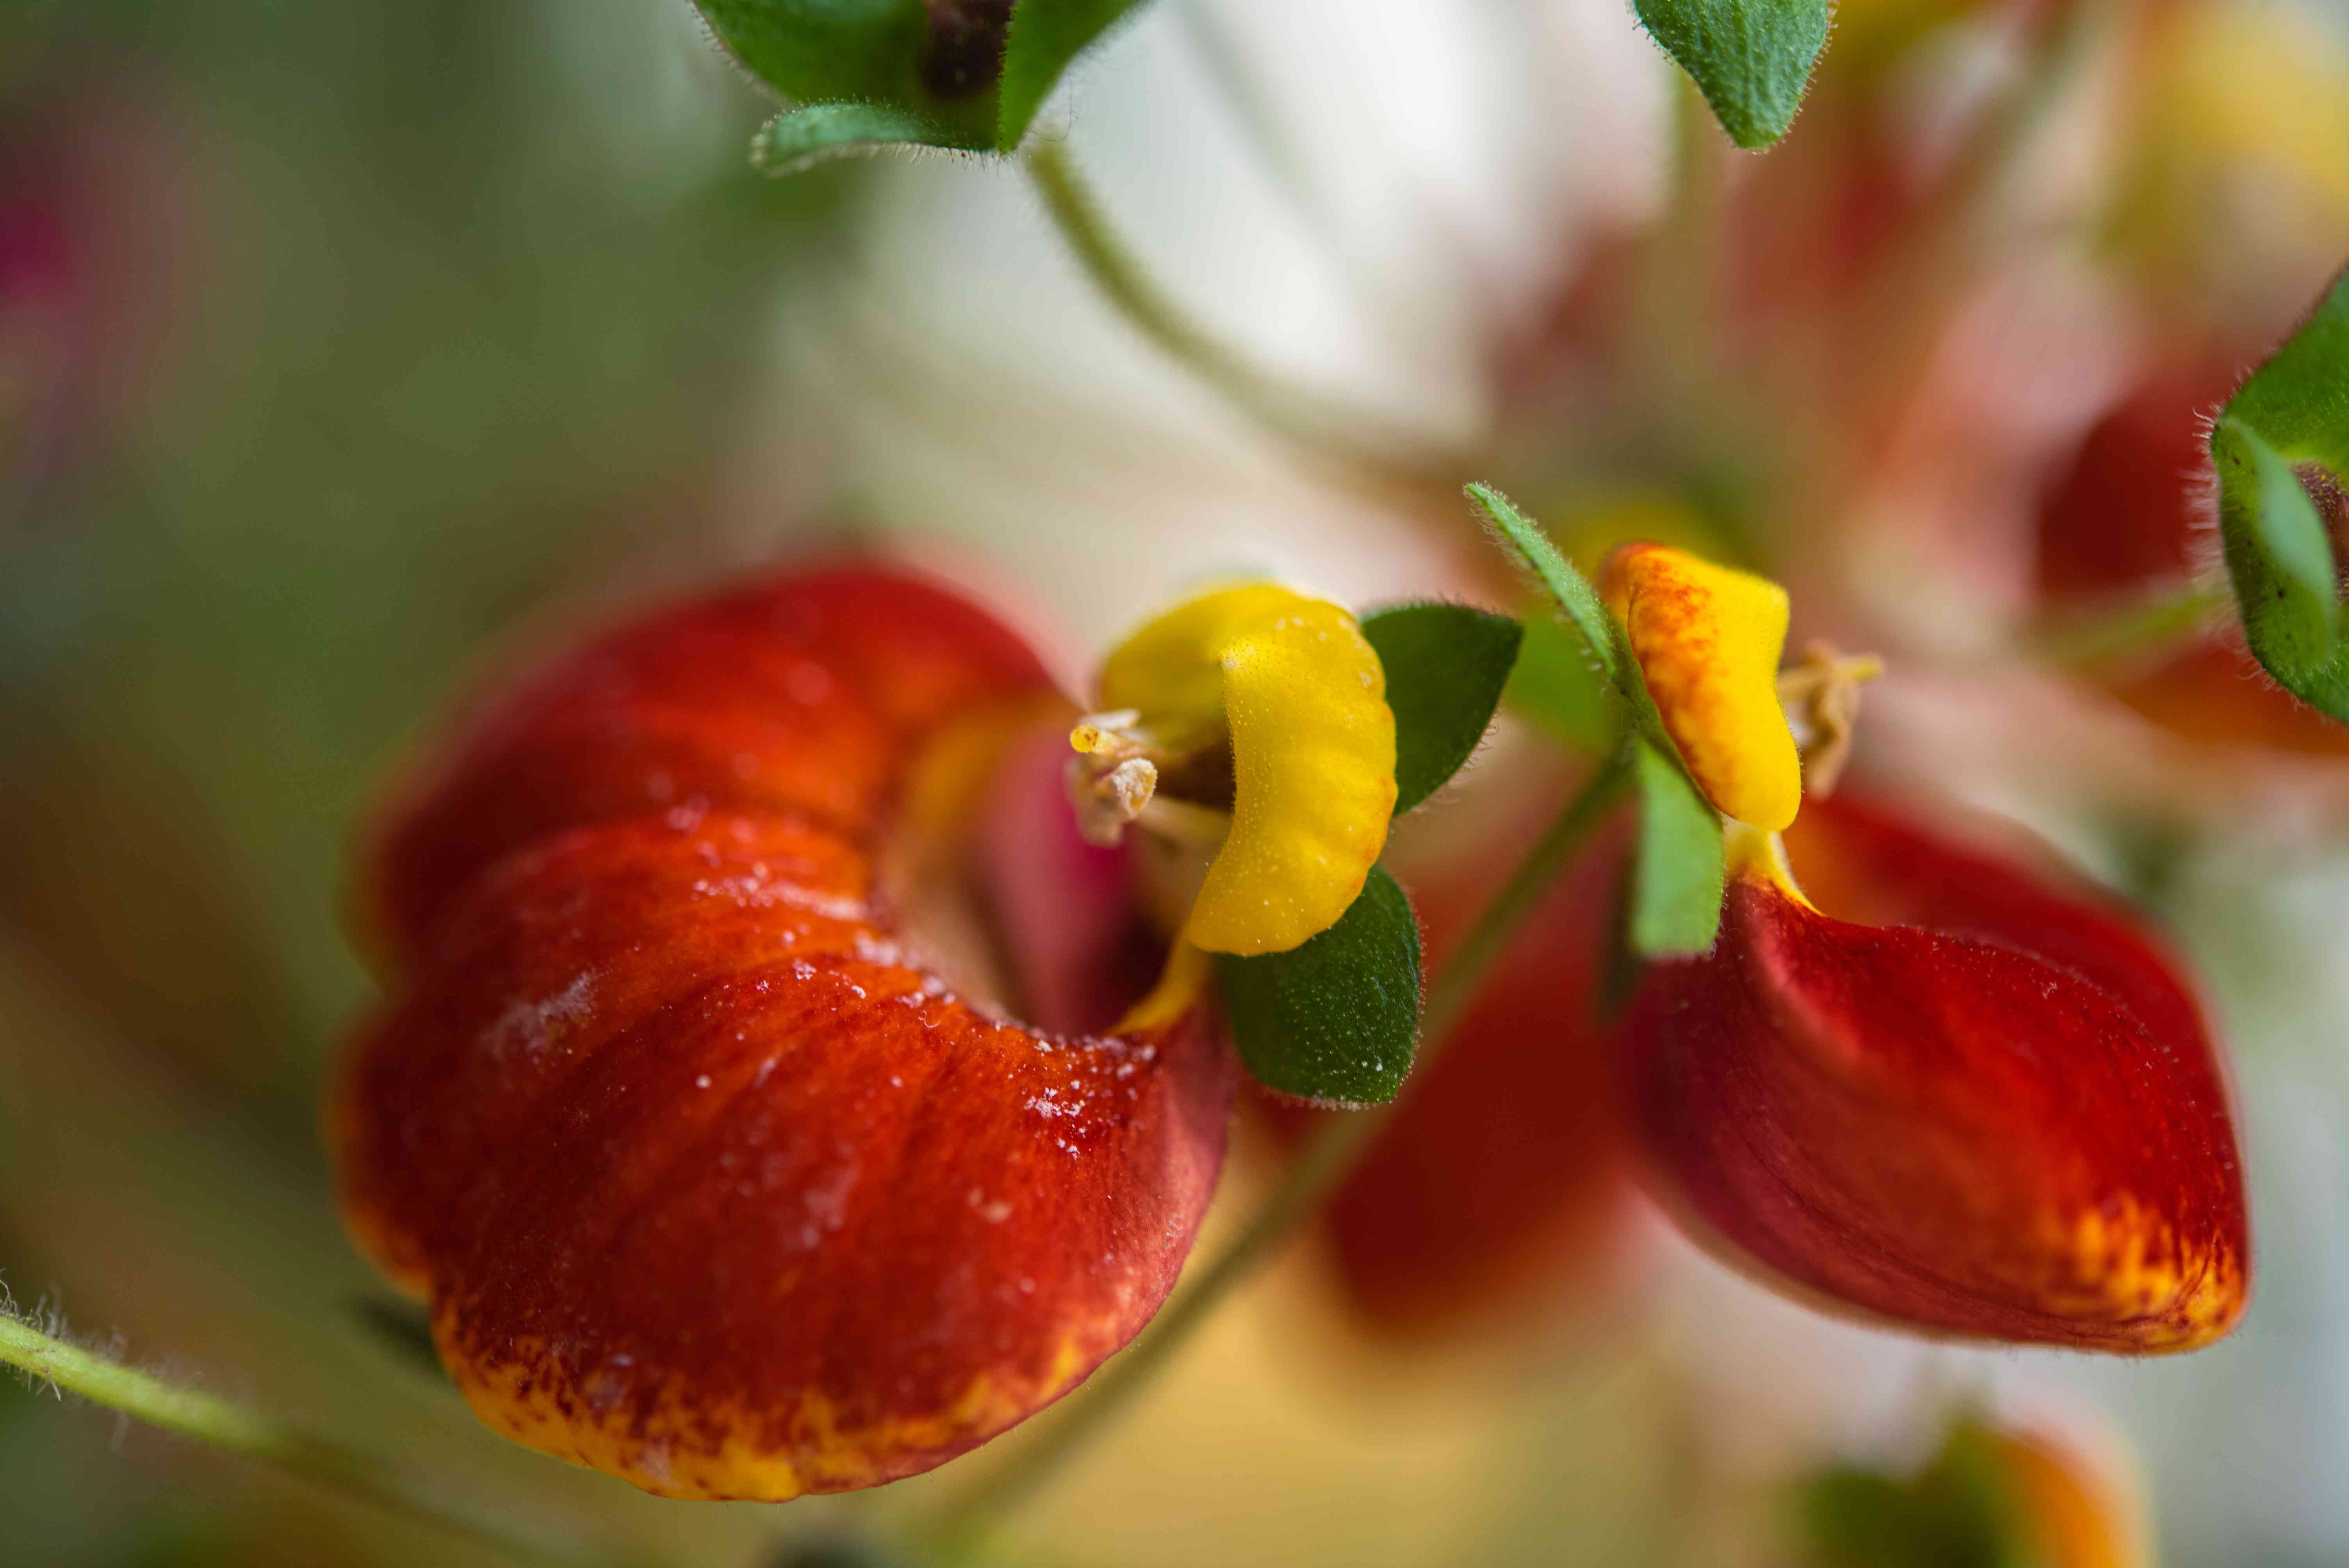 Calceolaria plant with red and yellow slipper-like flowers and vine closeup